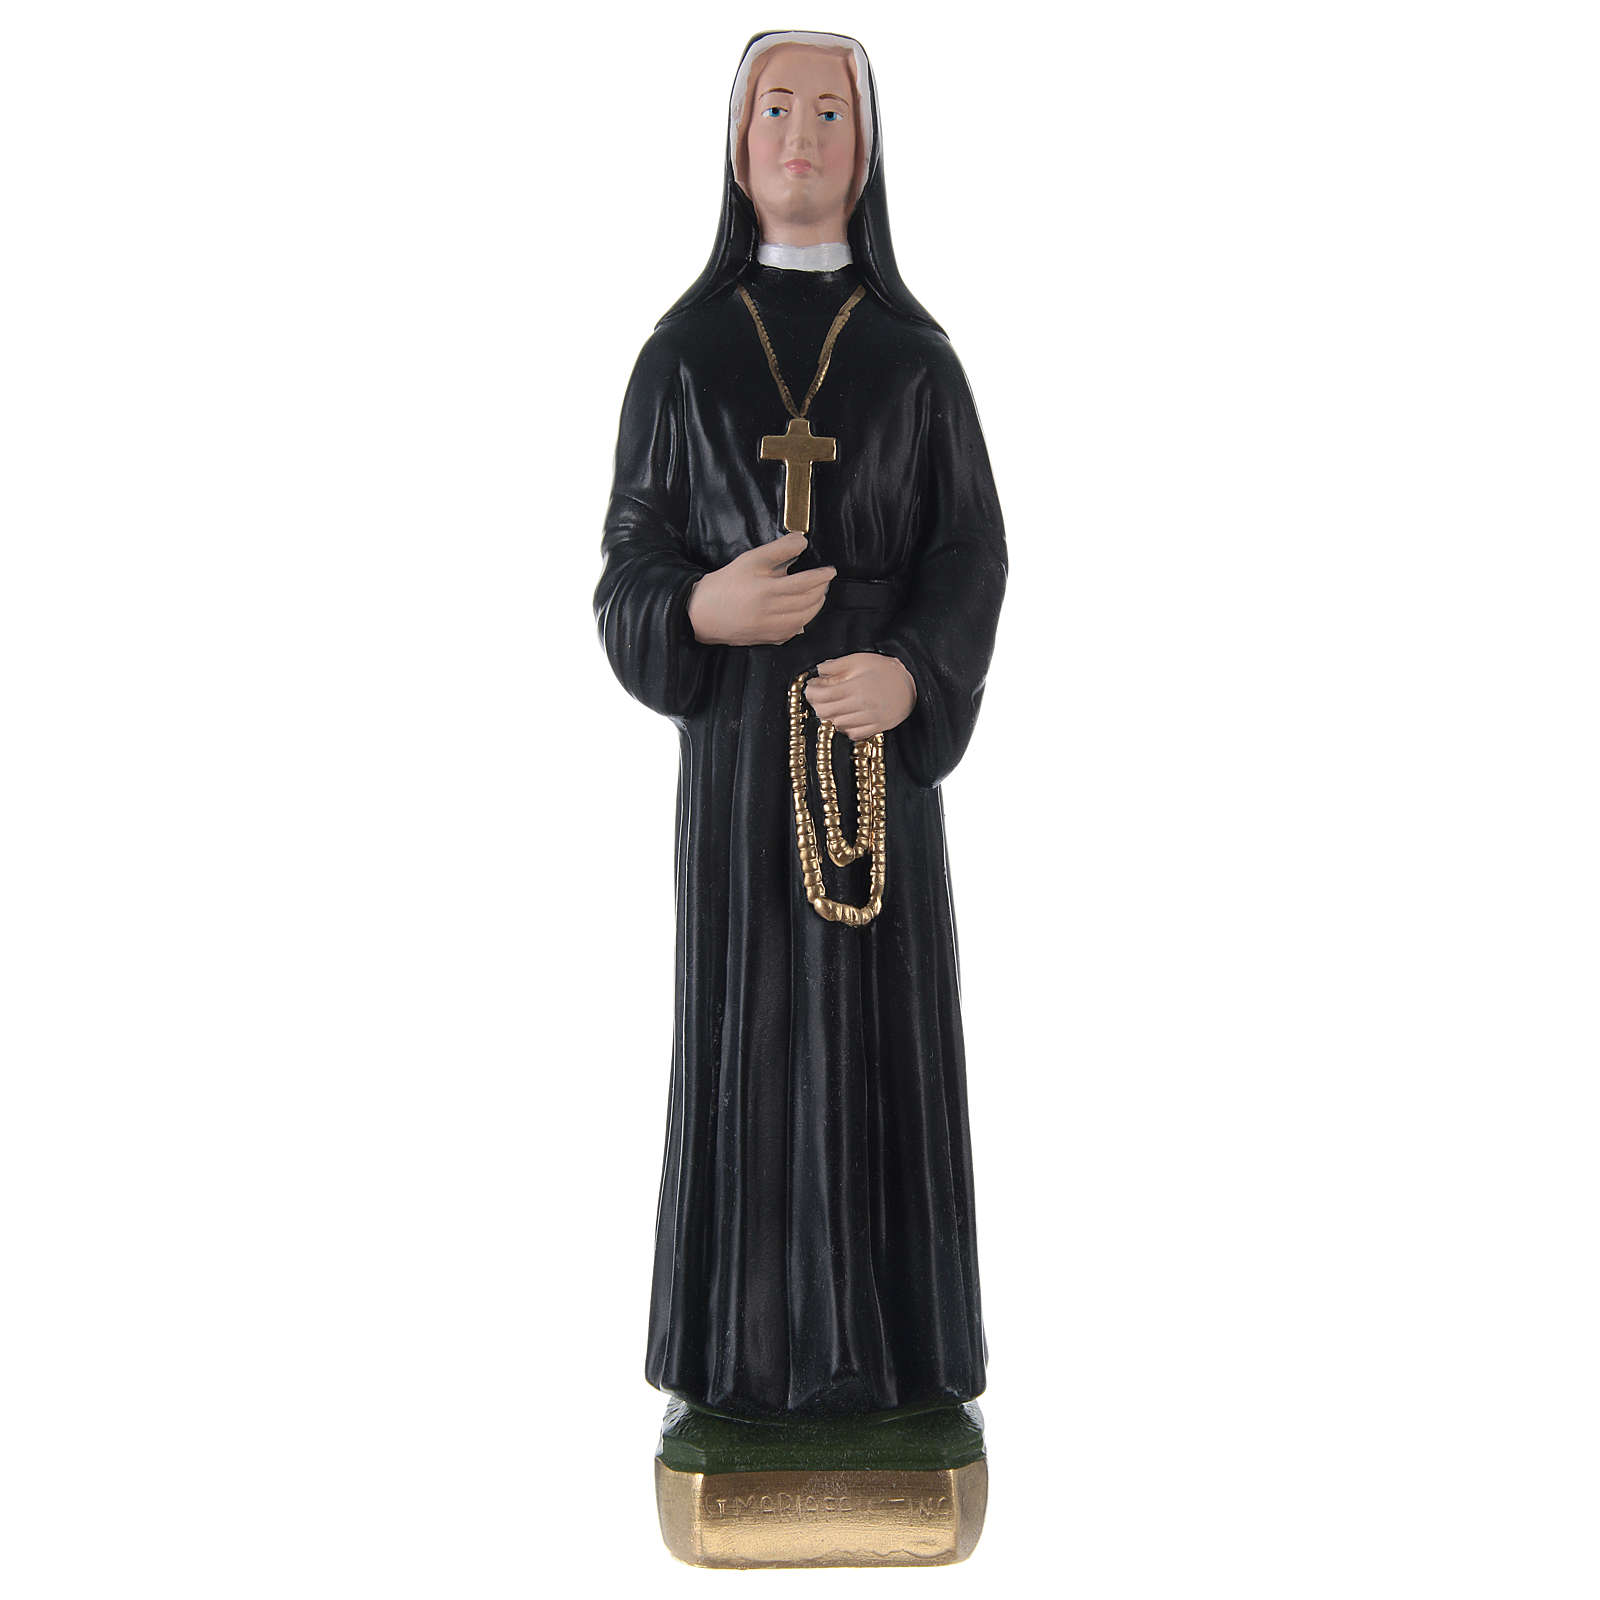 Sister Faustina 30 cm in painted plaster 4